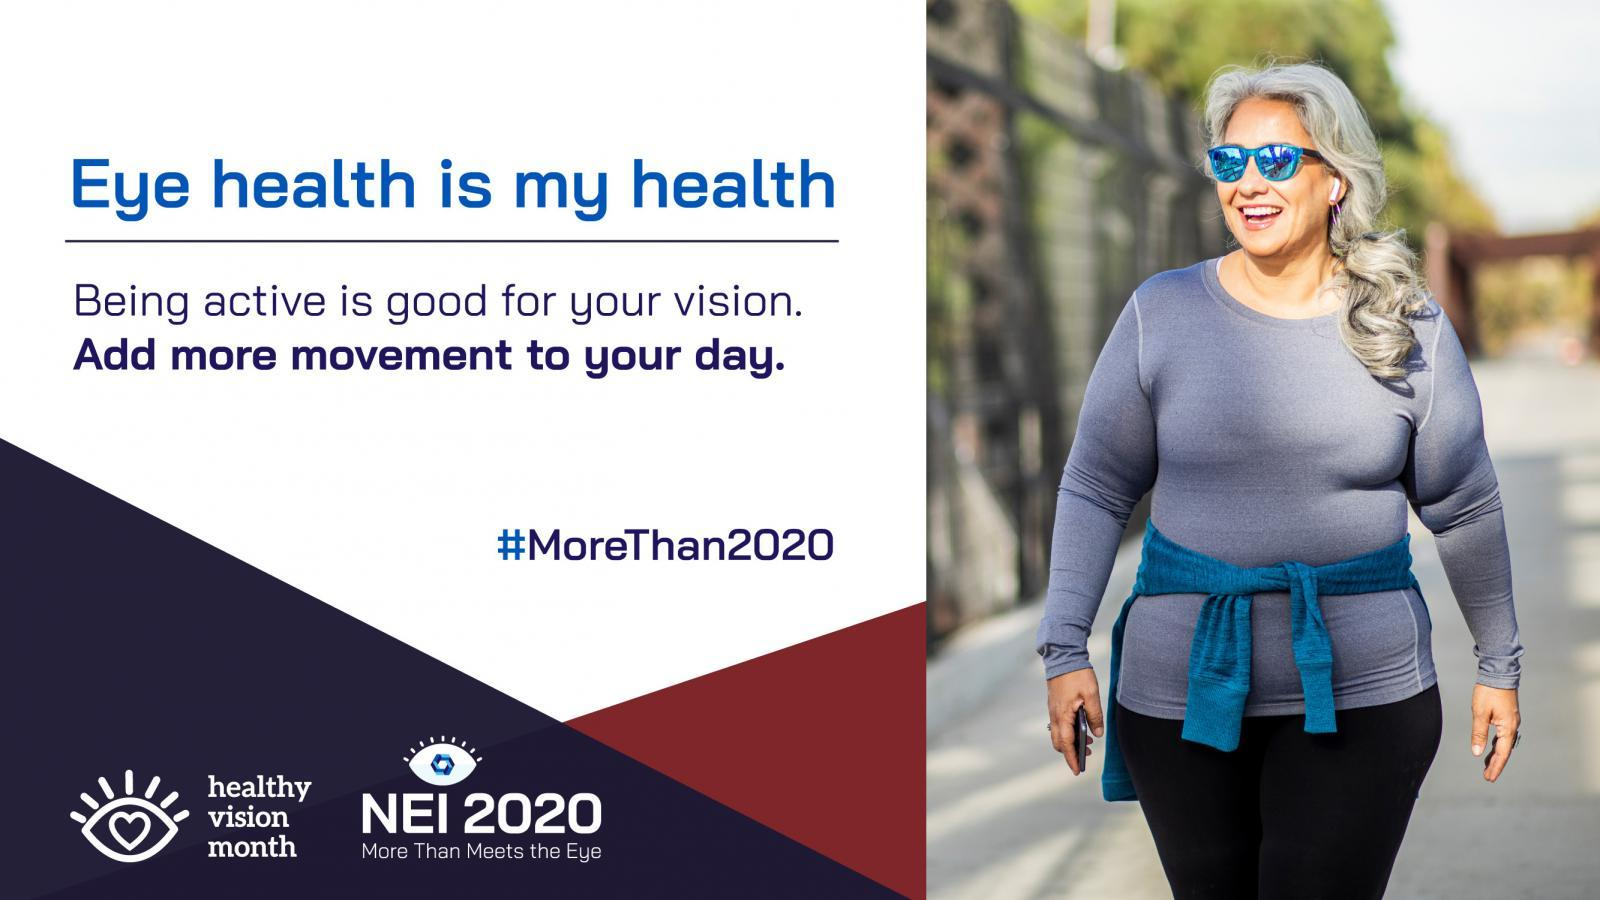 Eye Health Is My Health promotional graphic with a healthy vision tip, and Latina woman in exercise clothes, walking. Being active is good for your vision. Add more movement to your day.